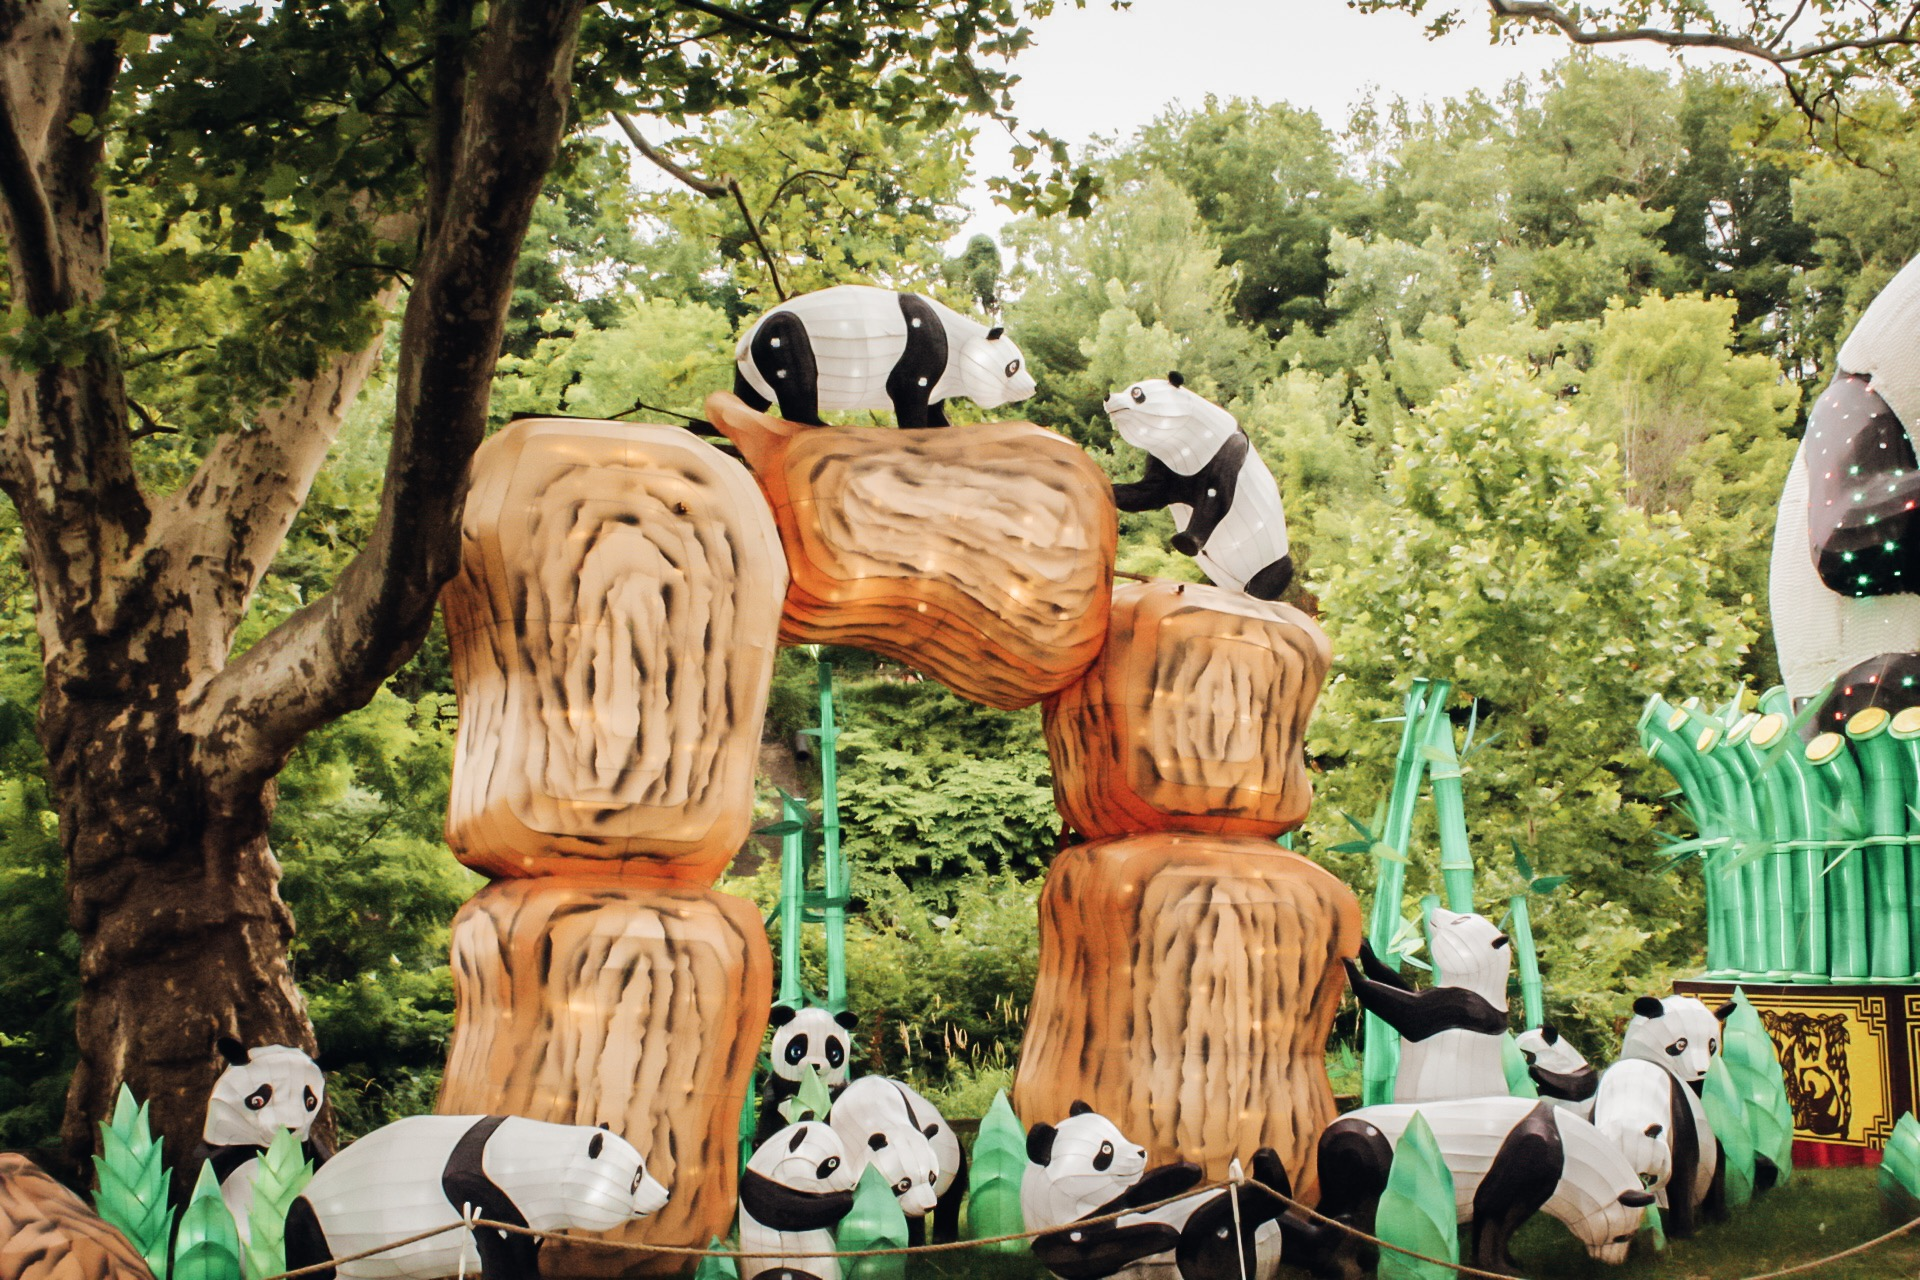 The panda lanterns are so cute!! The kissing panda's on the top are my favorite.